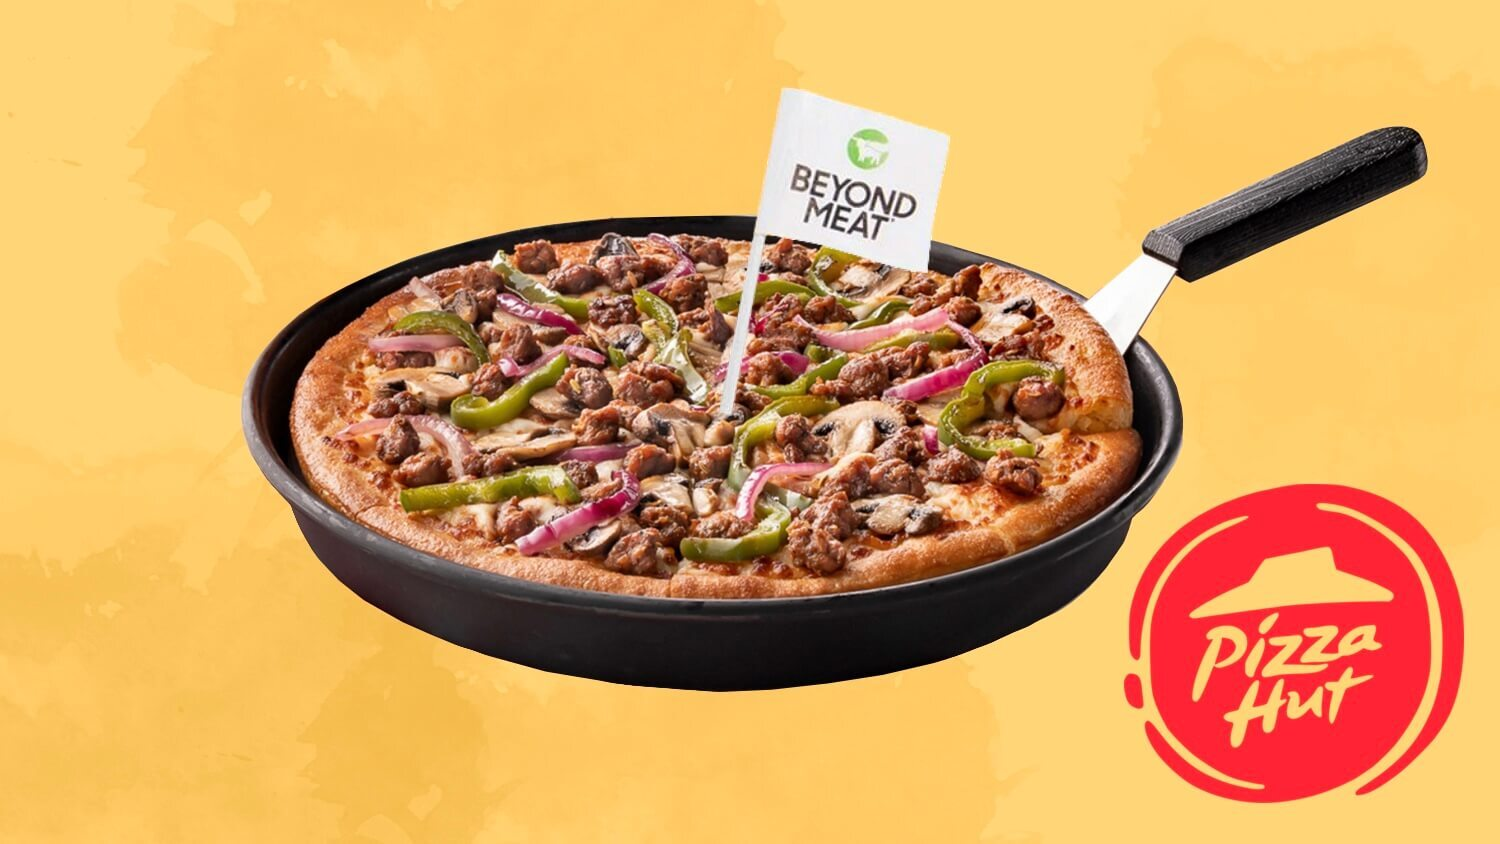 Now On the Pizza Hut Menu In Puerto Rico: Beyond Meat Sausage